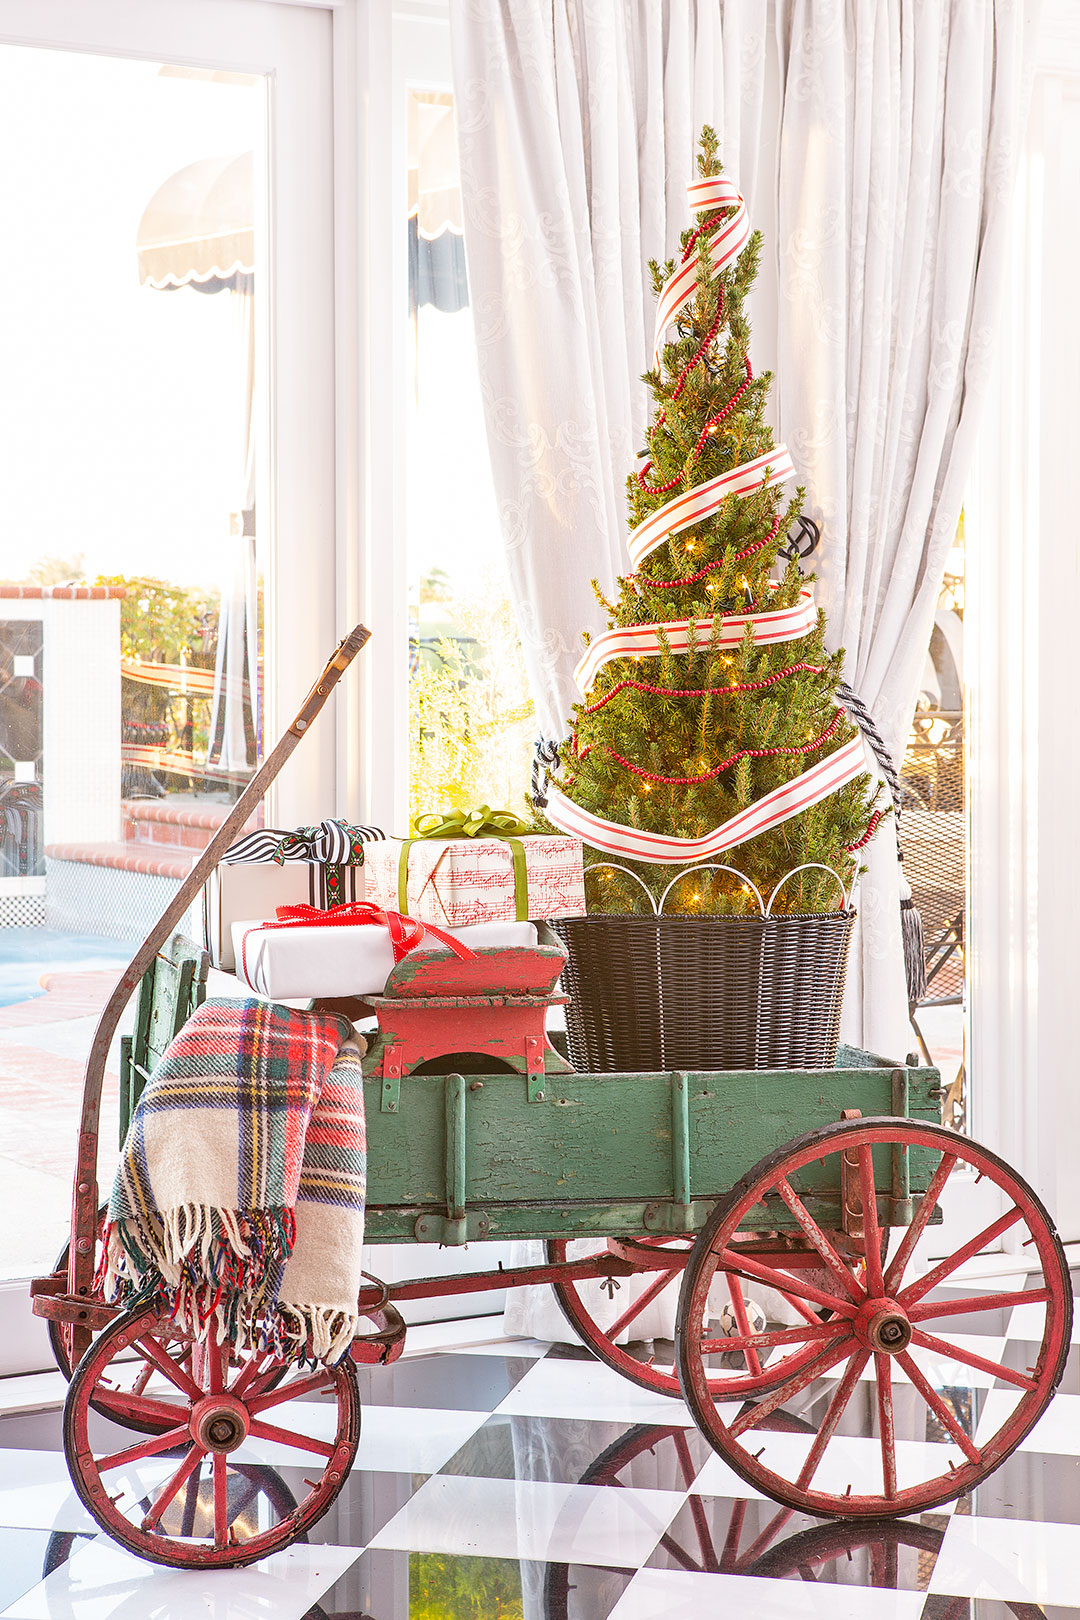 An antique, green wagon with a small tree, wrapped gifts and a tartan blanket in it